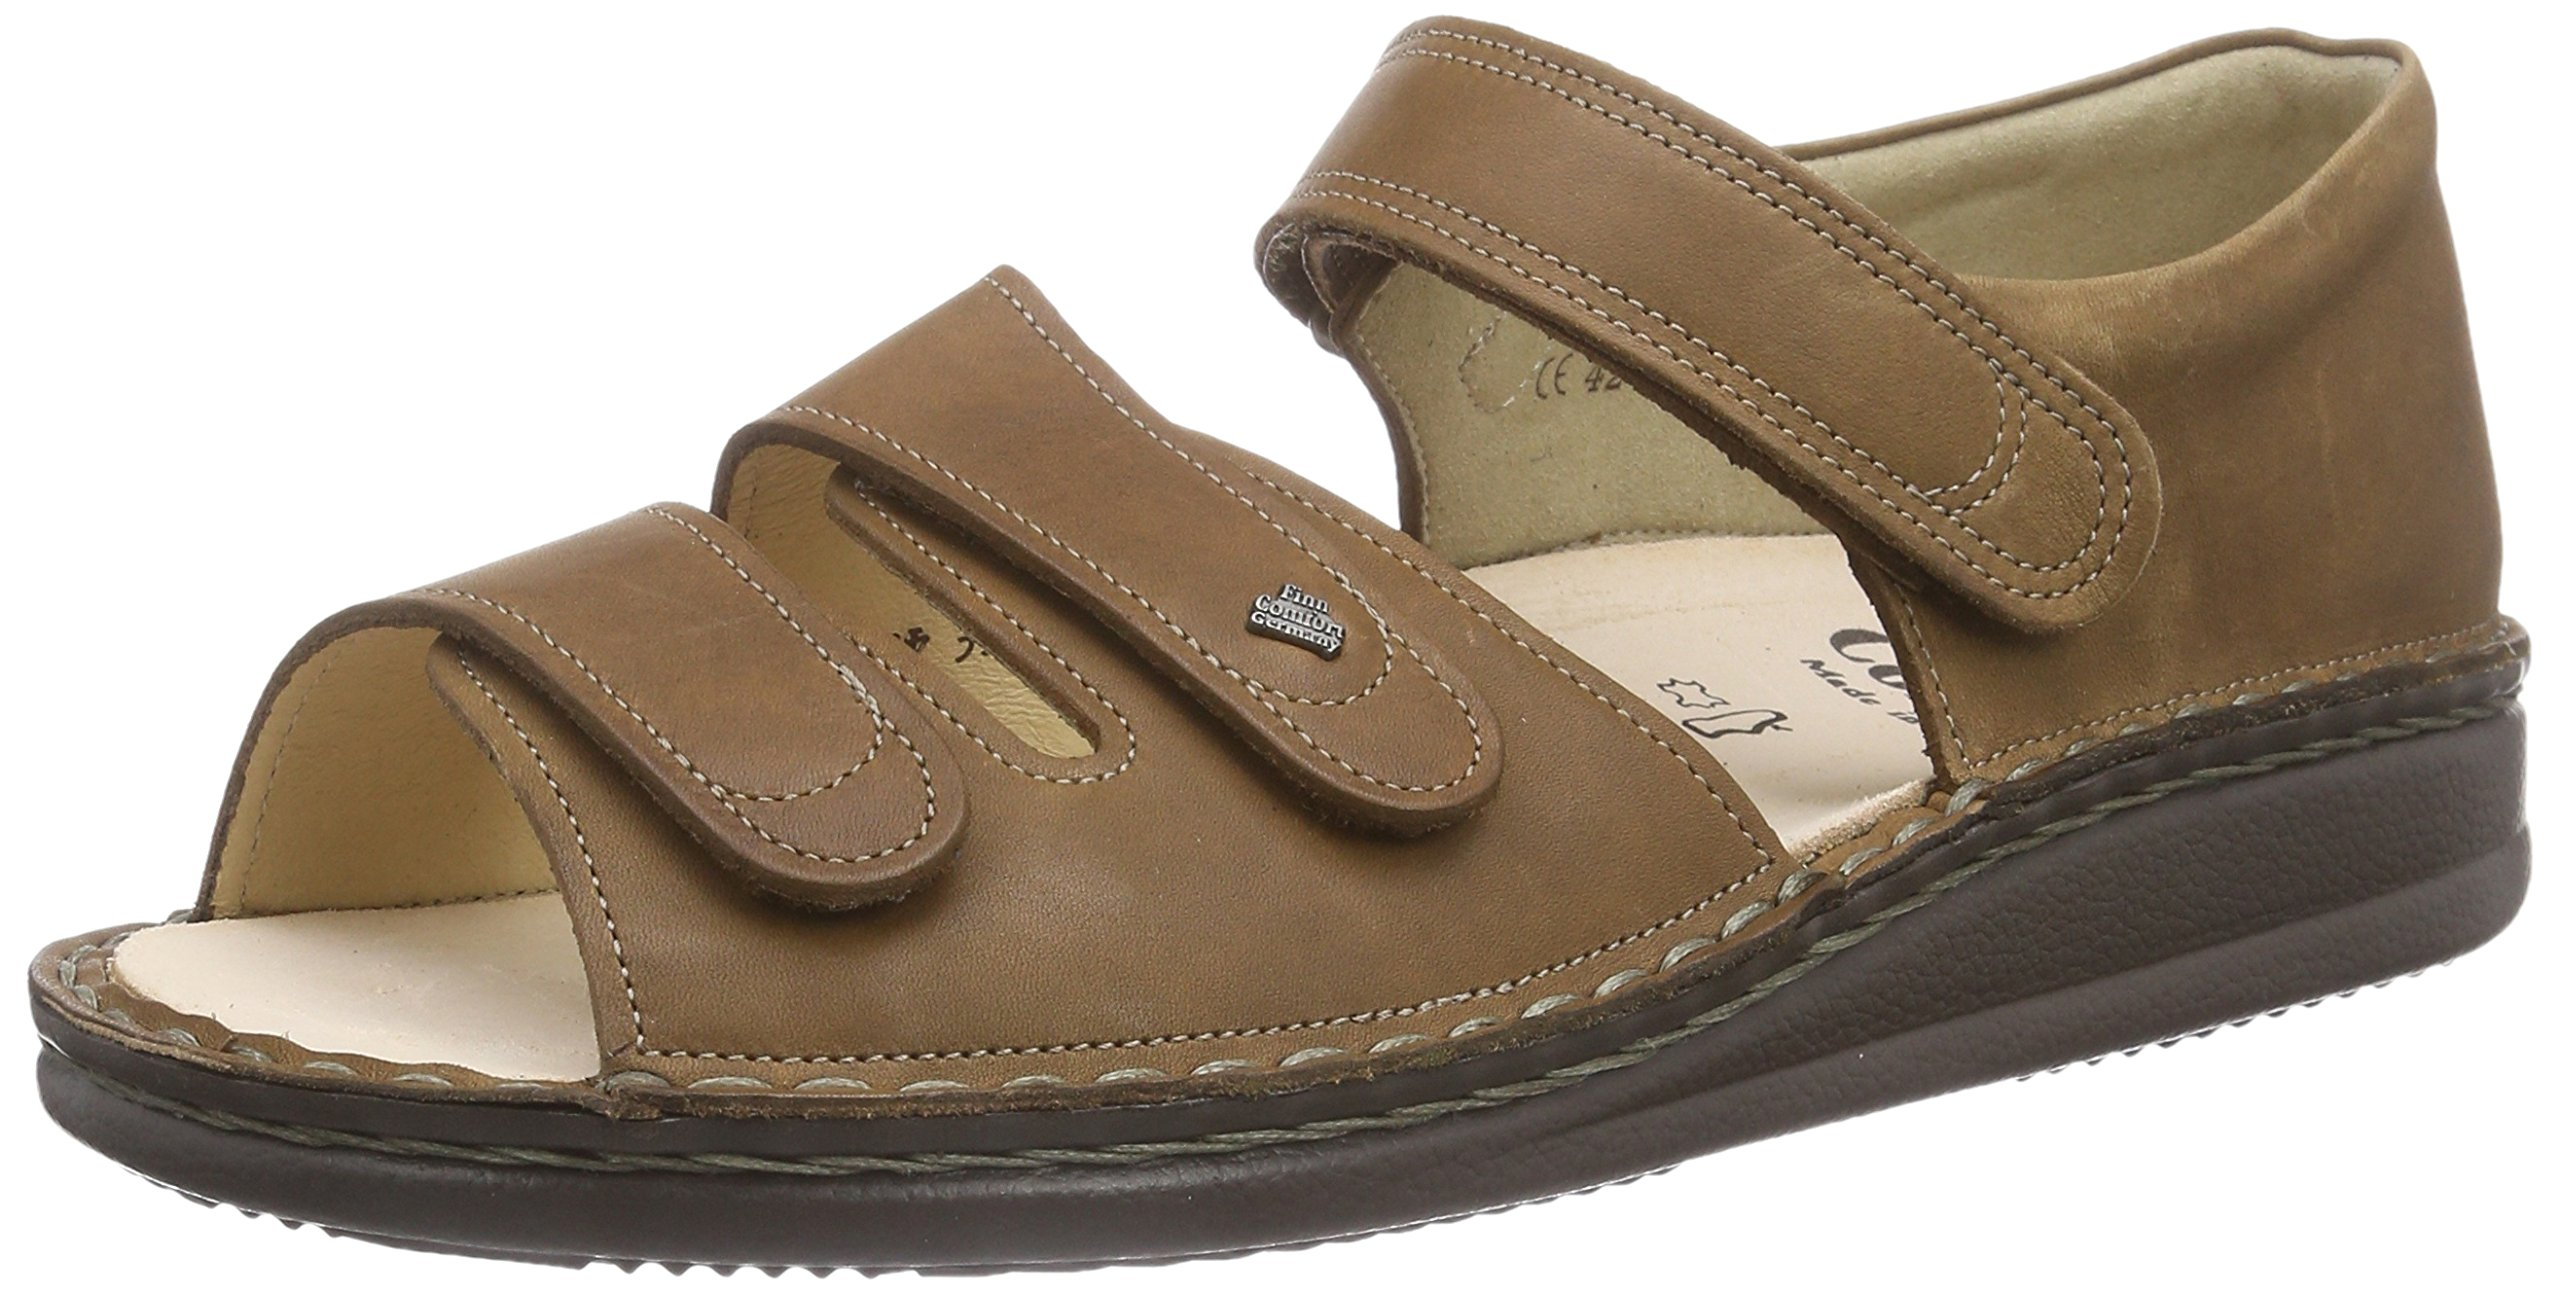 Finn Comfort Unisex Baltrum Nut Kansas Leather Size 39 Medium